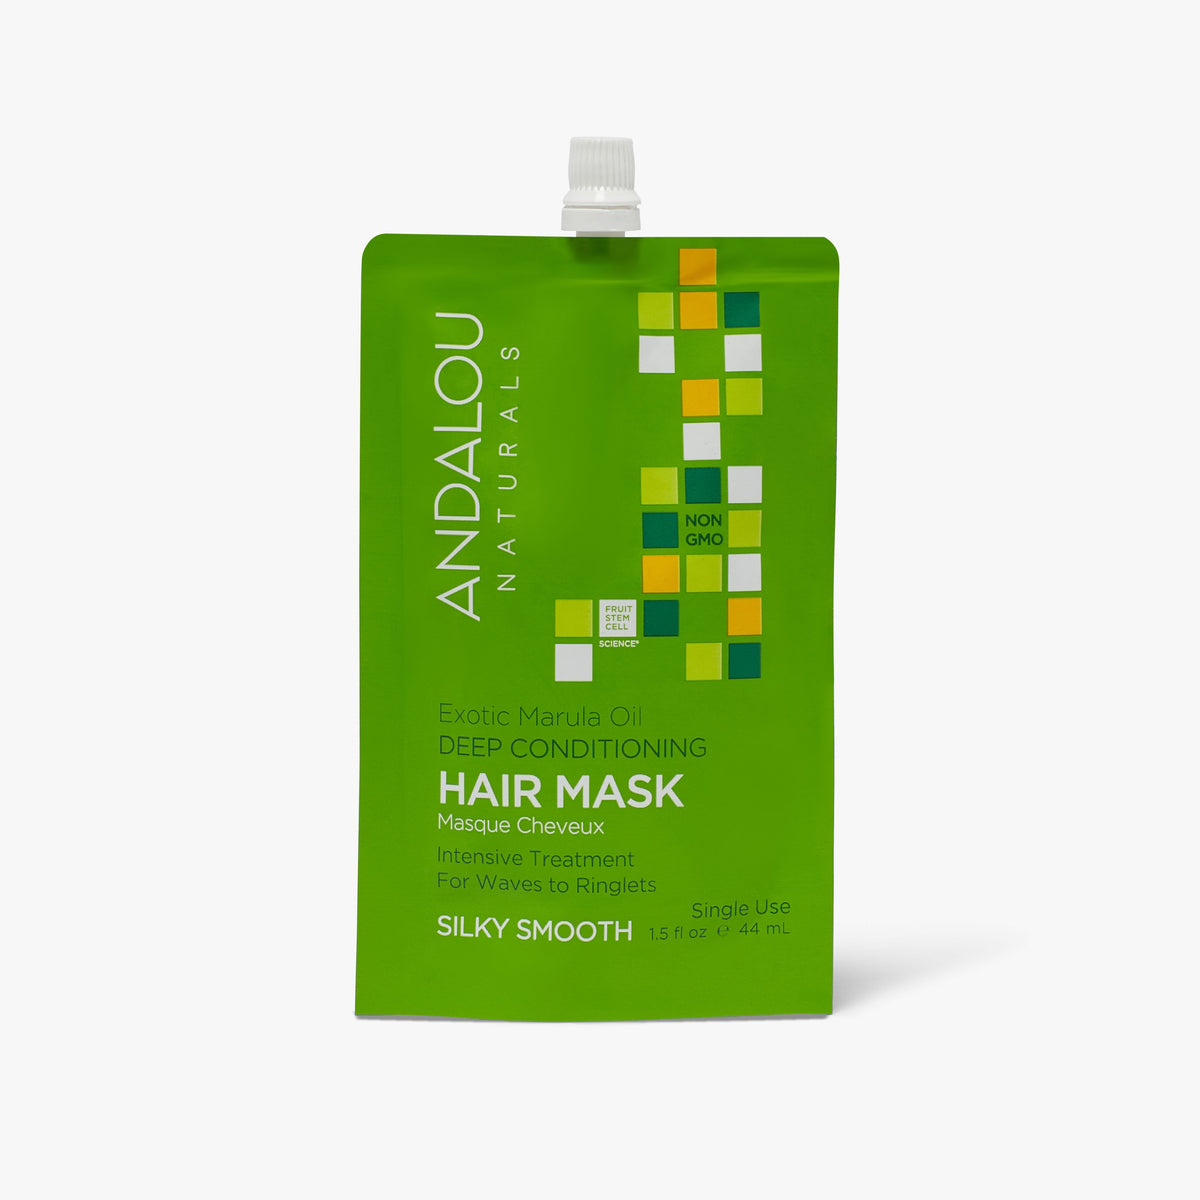 Exotic Marula Oil Silky Smooth Deep Conditioning Hair Mask - Andalou Naturals US